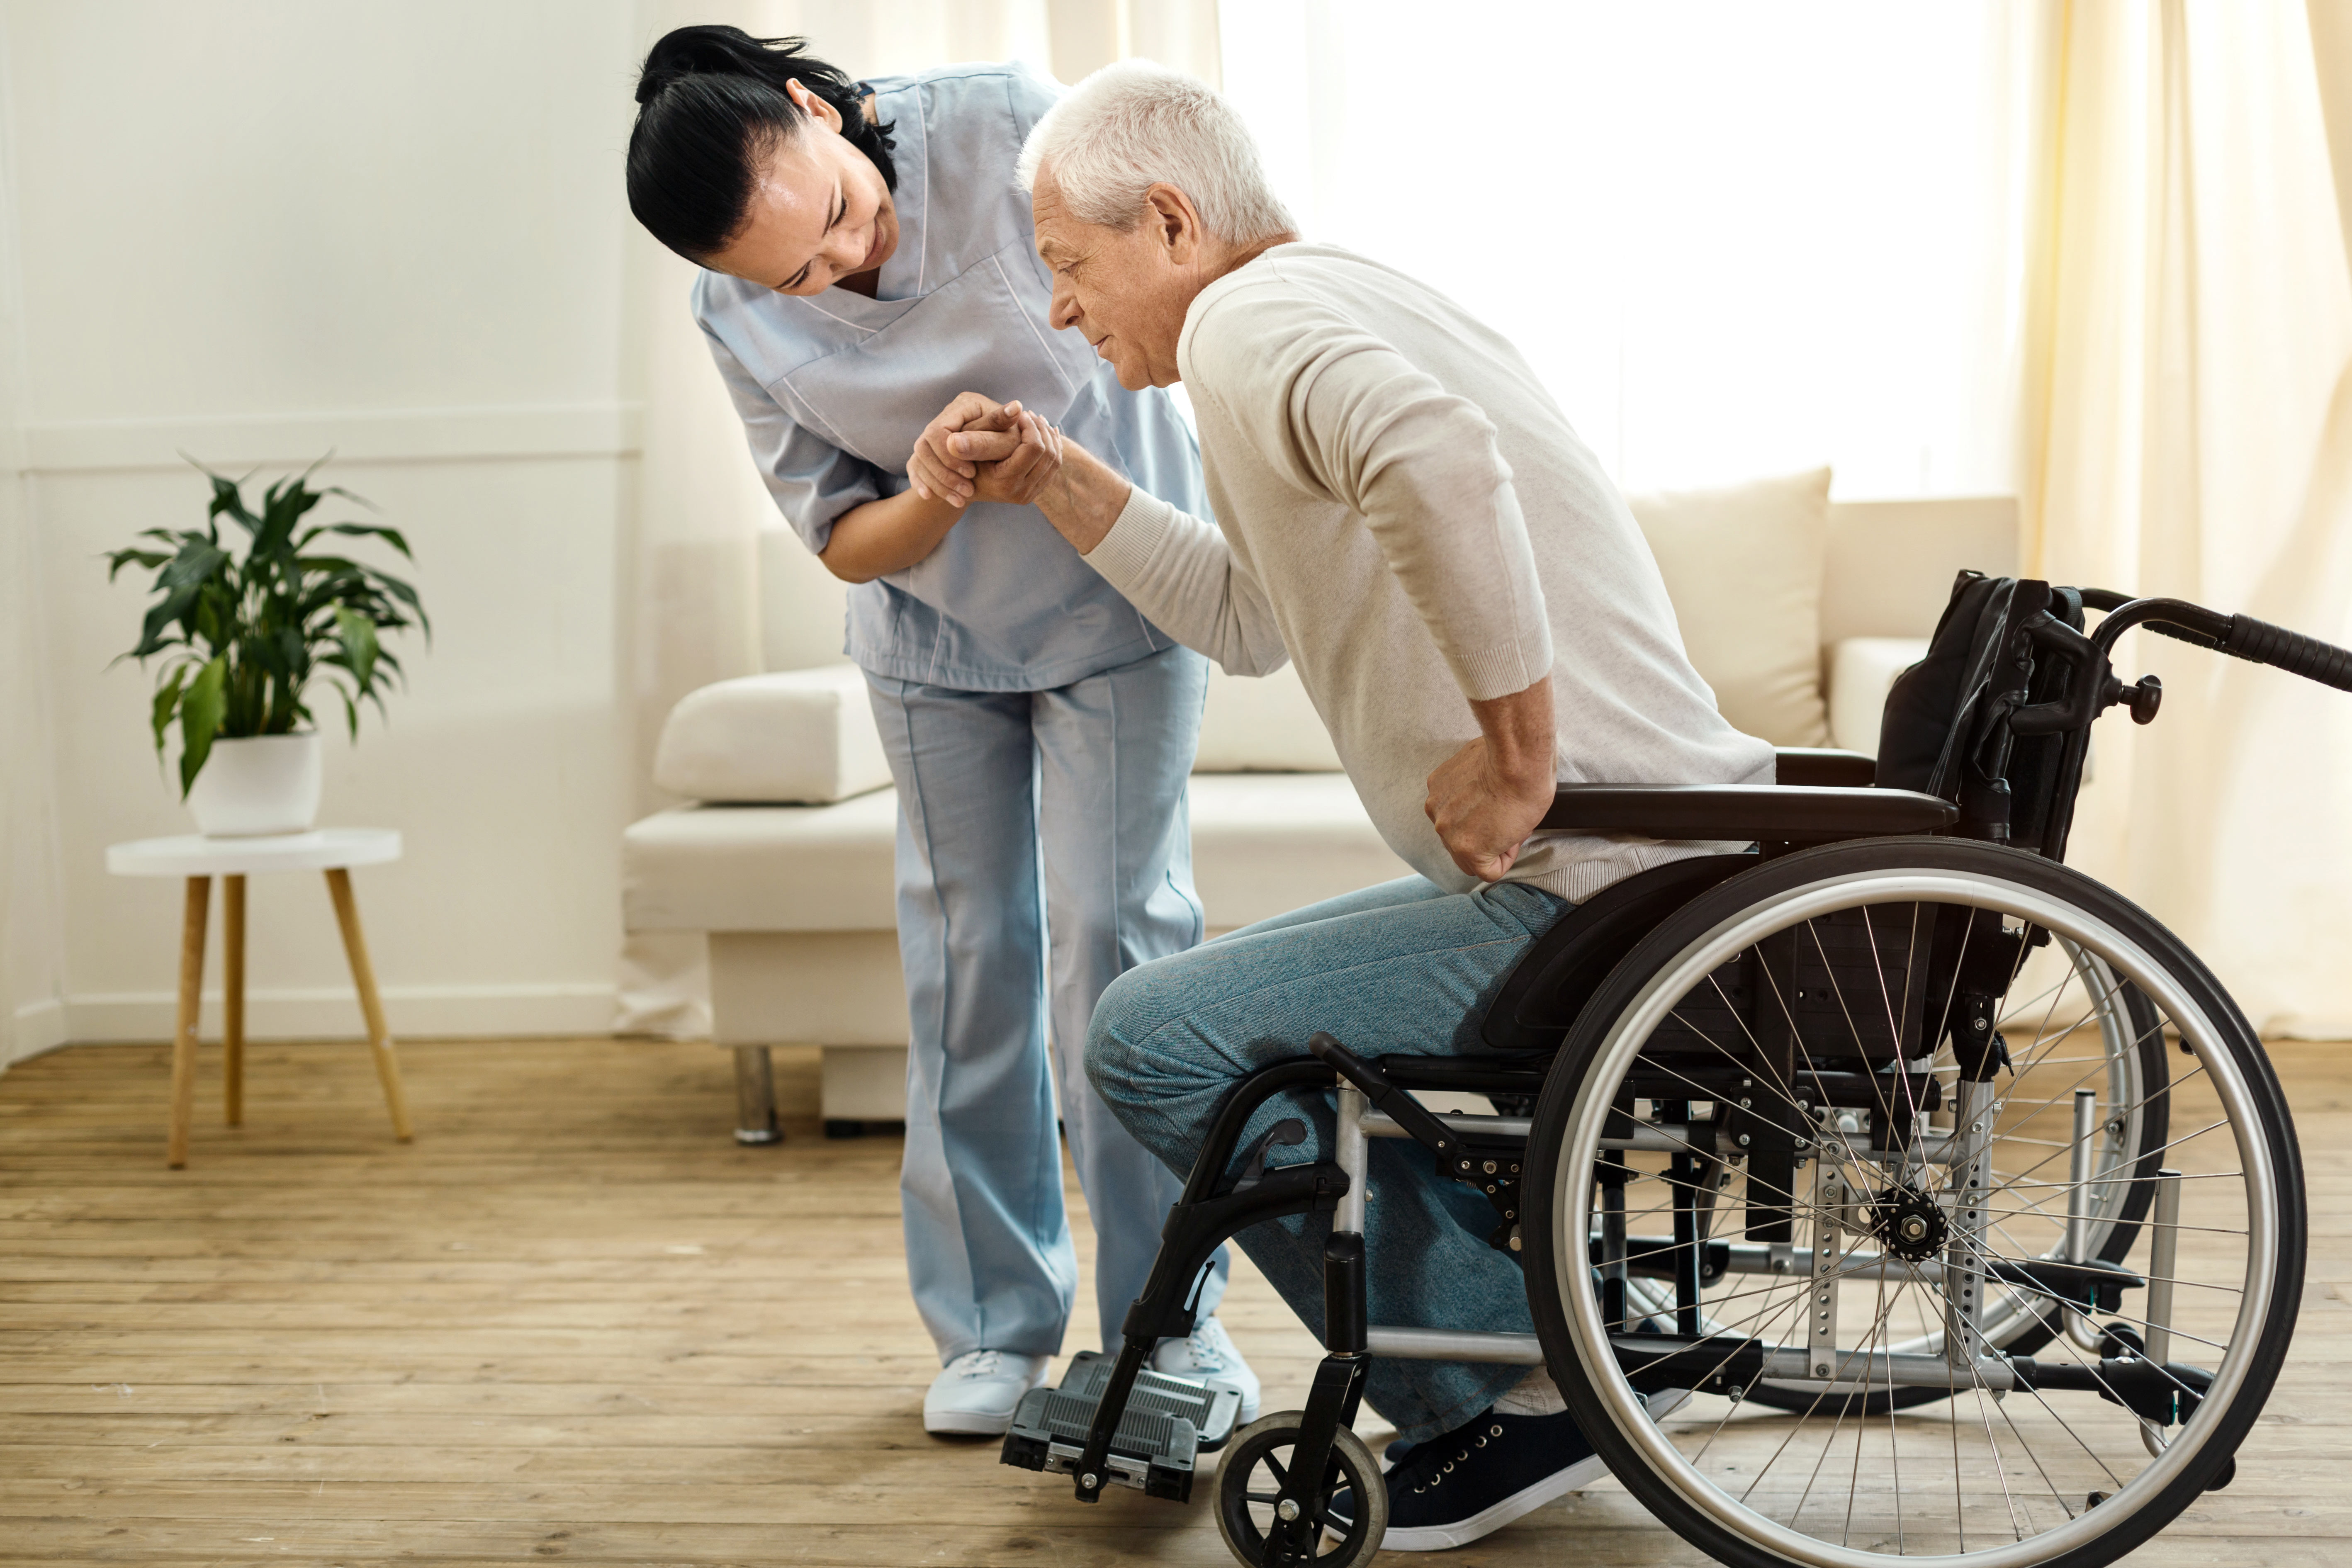 Caregiver Helping Patient